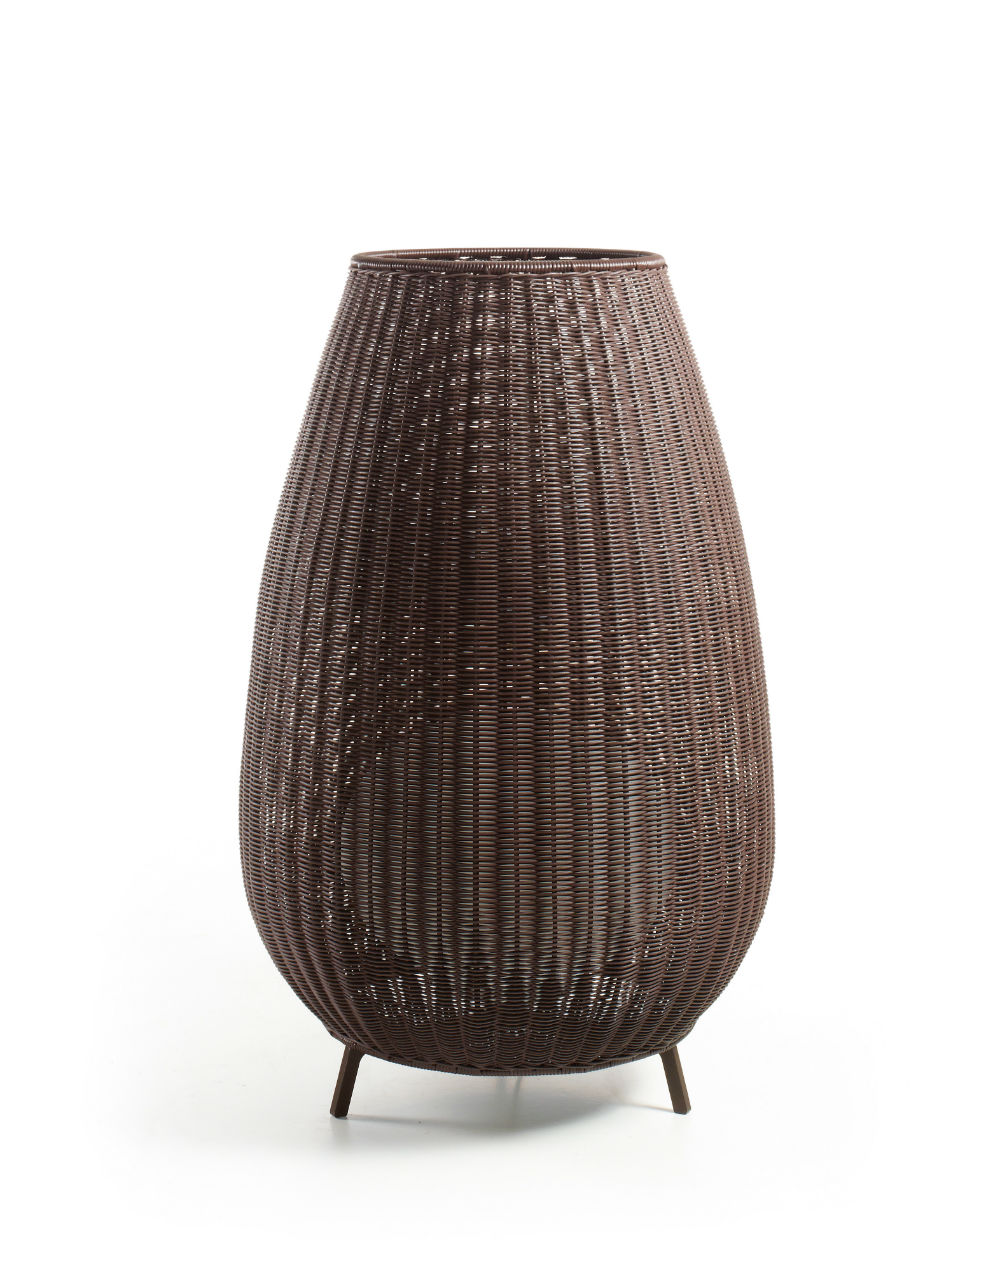 Amphora - 01 (Accessory) lampshade for lámpara of Floor Lamp Outdoor E27 22w Brown